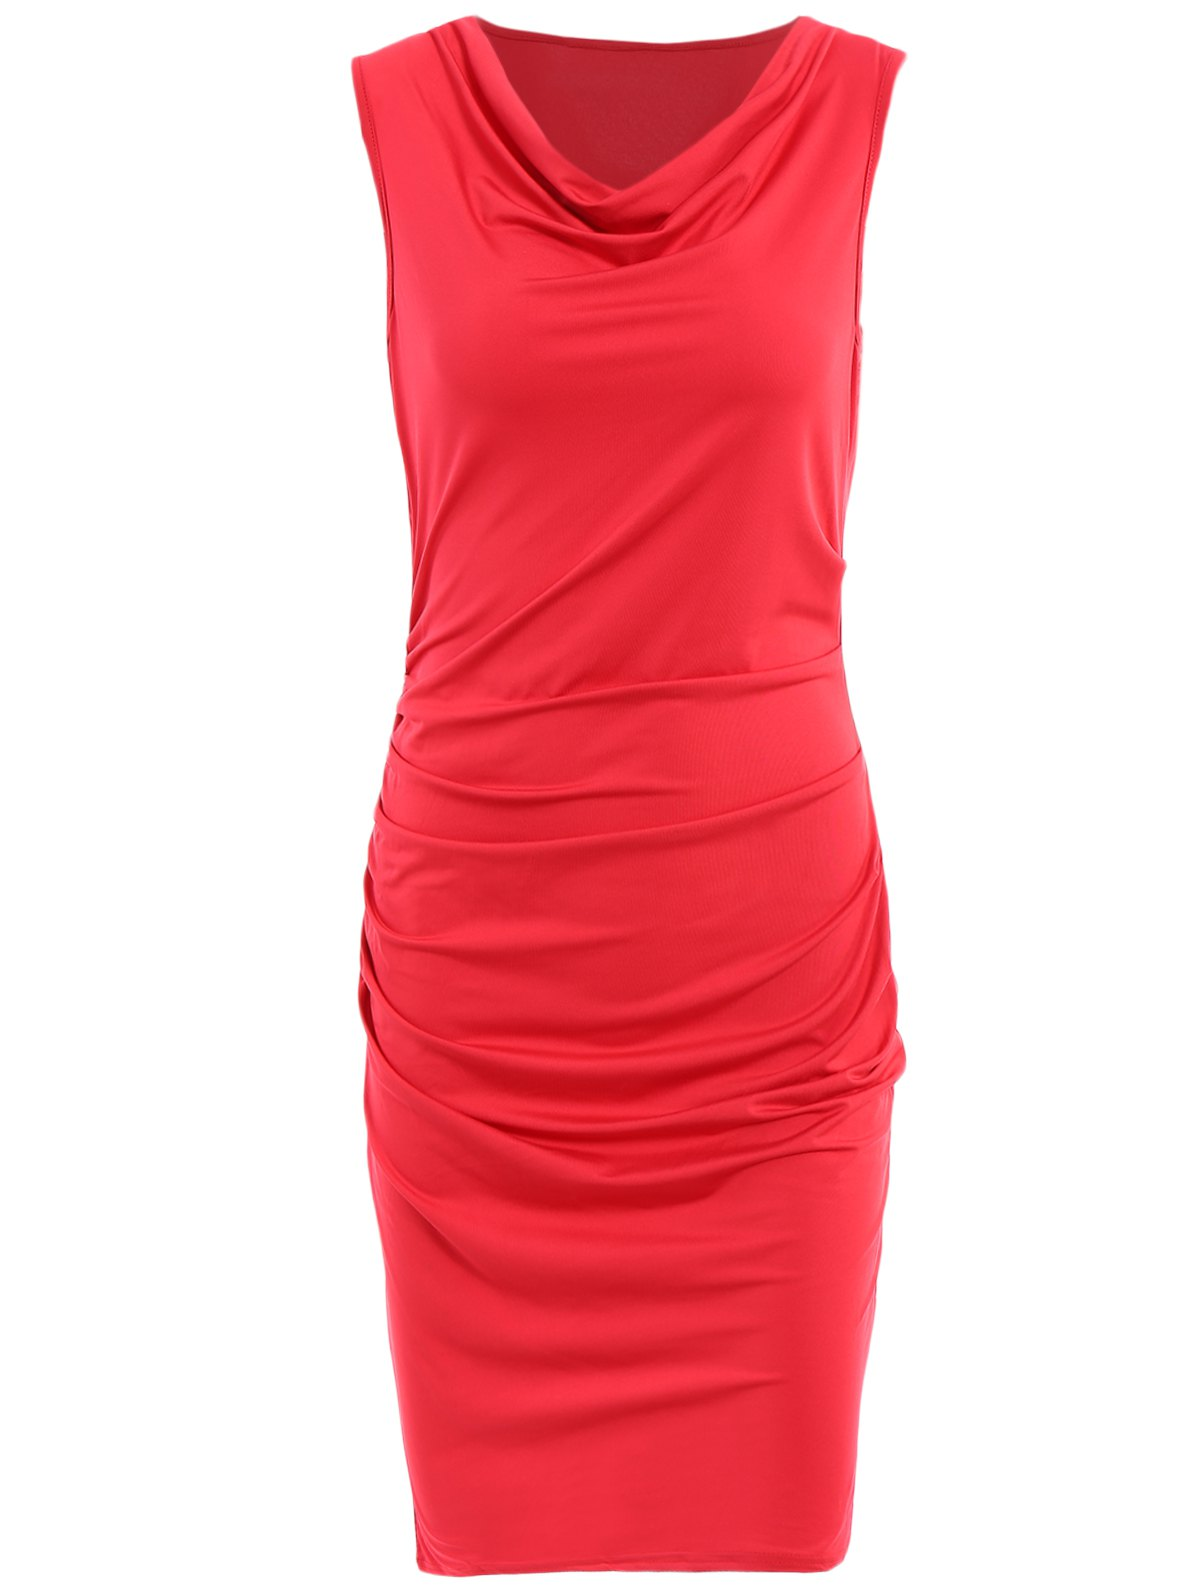 Alluring Style V Neck Sleeveless Solid Color Sheathy Women's Dress - RED M